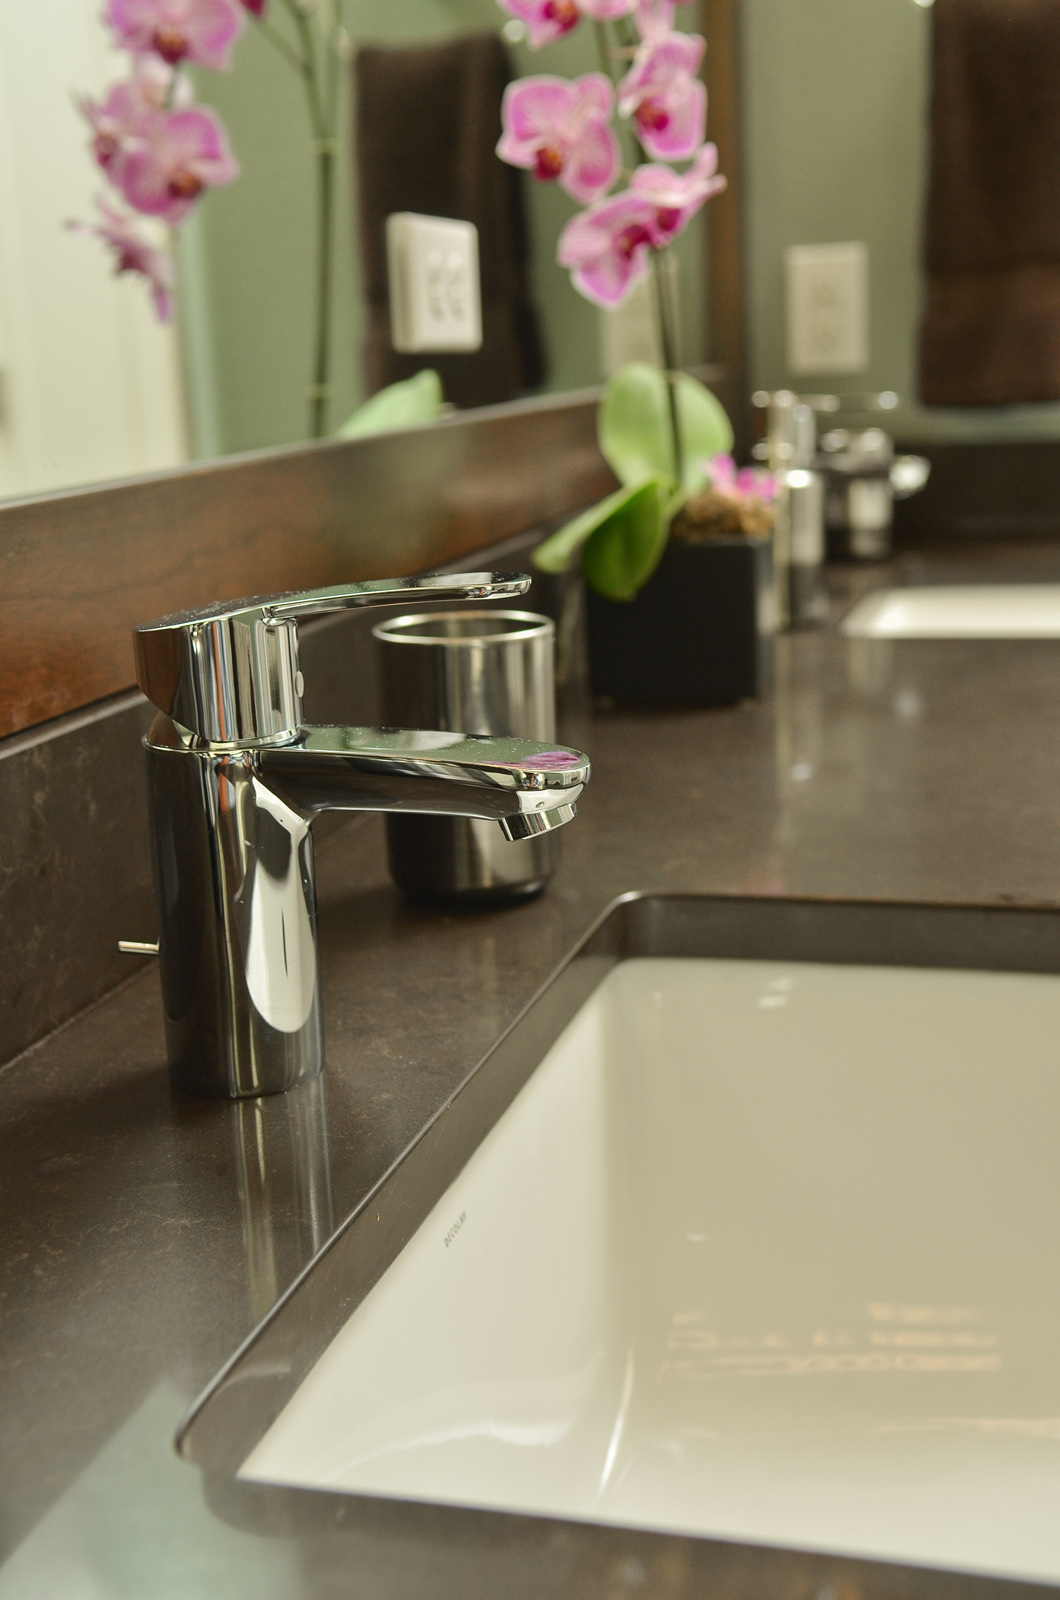 kitchen faucets and fixtures Ovation Design-build